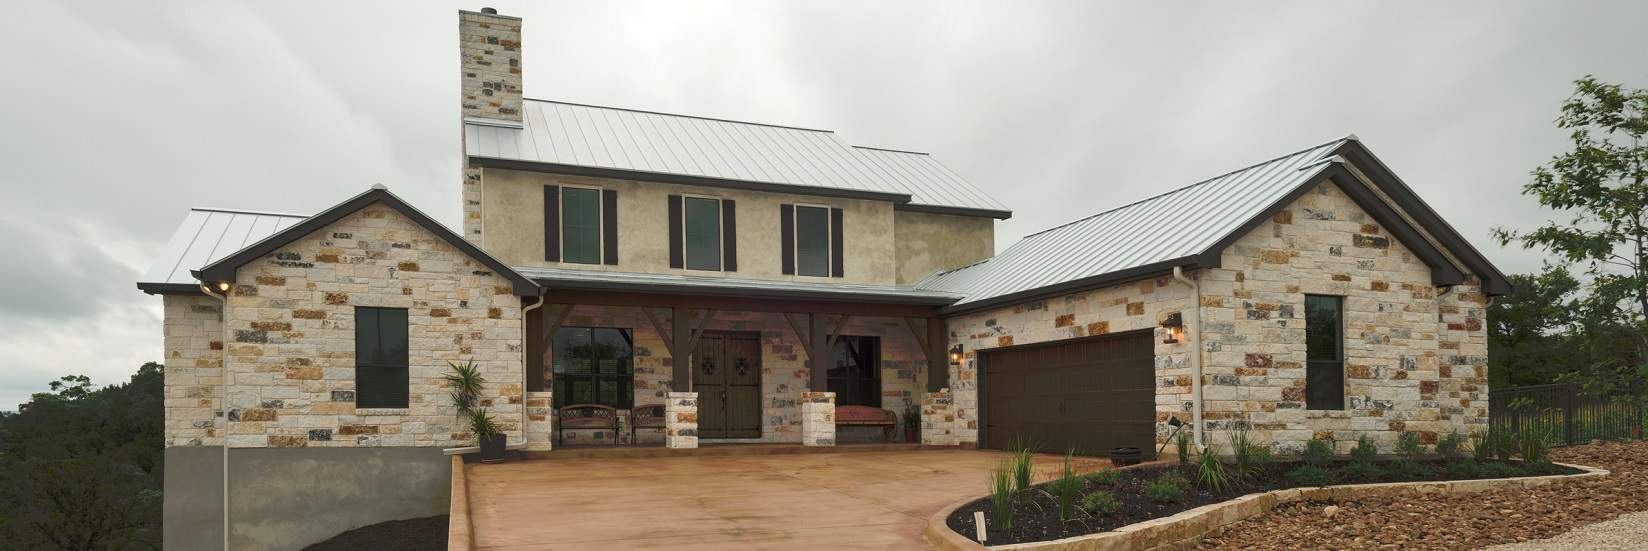 Boerne Custom Homes. Custom Home Builder   New Braunfels   San Antonio   Hill Country